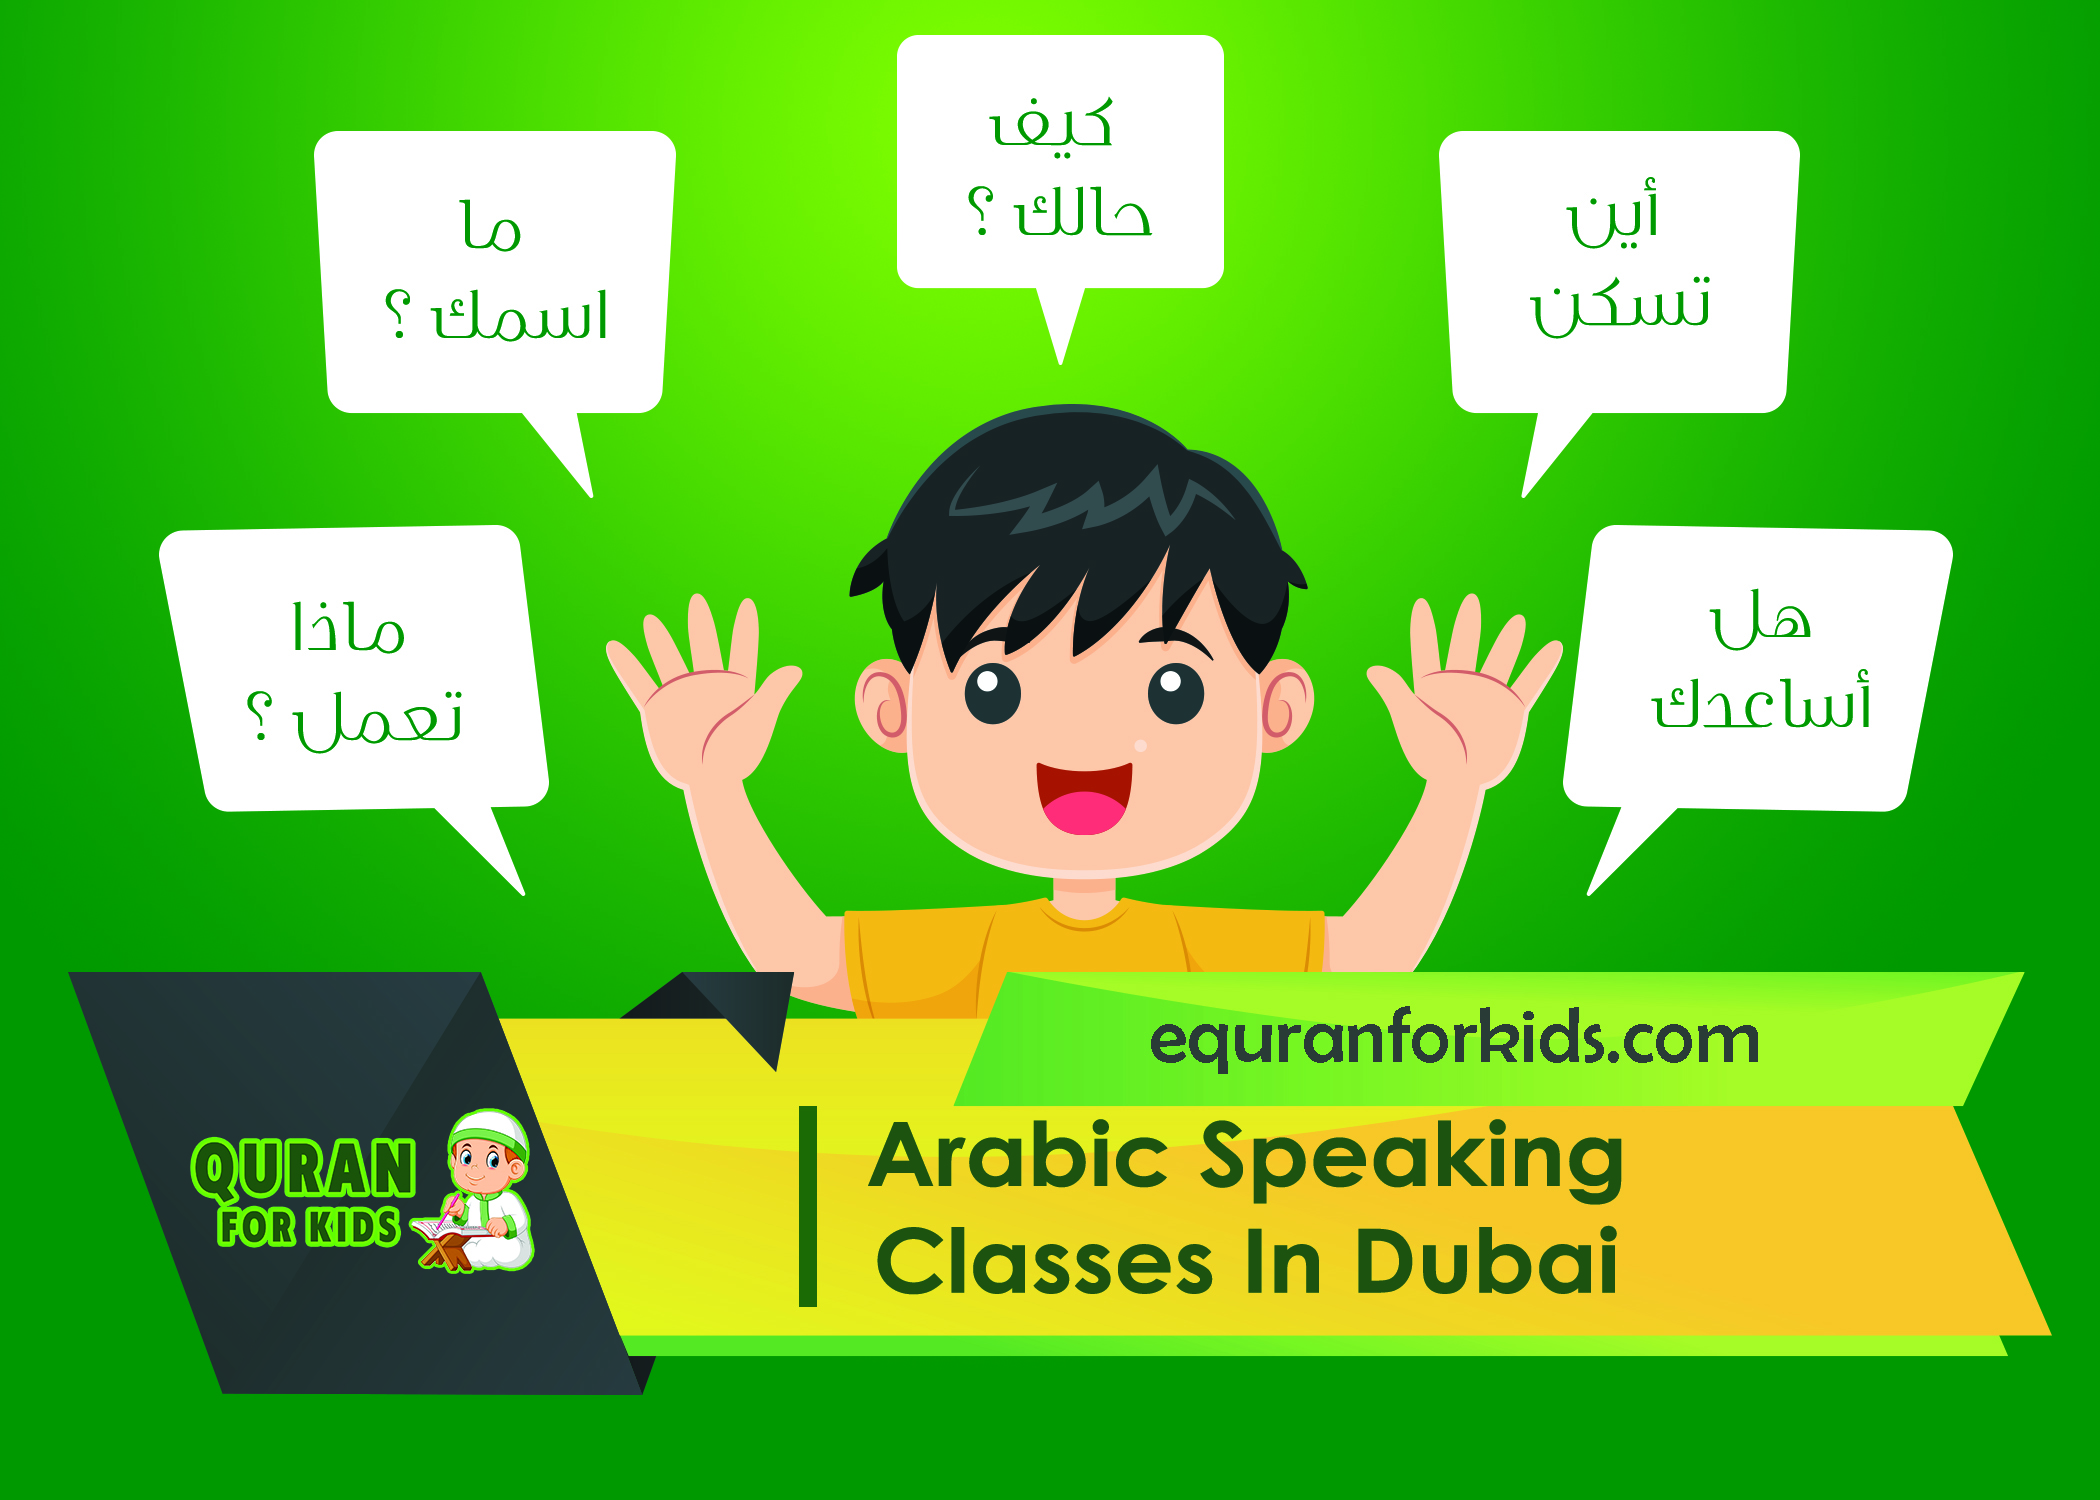 ARABIC SPEAKING CLASSES IN DUBAI